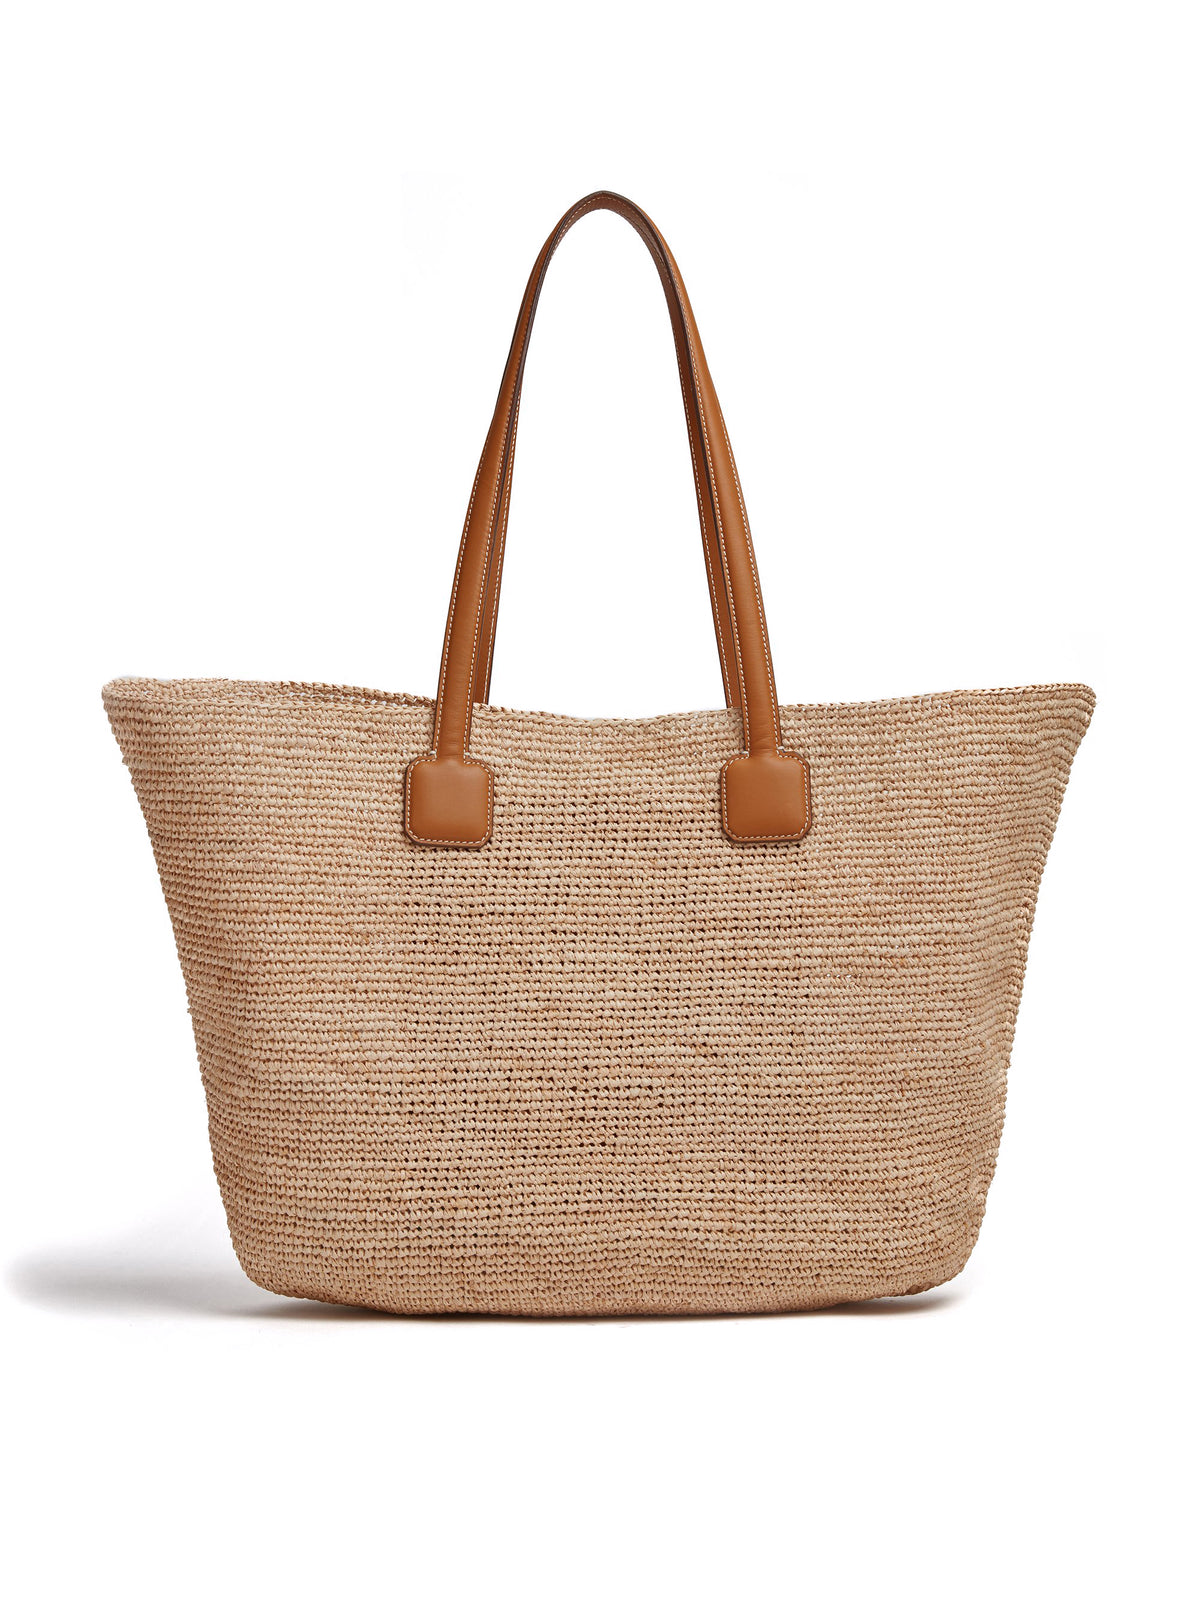 Mark Cross Côte d'Azur Raffia & Leather Tote Bag Soft Calf Luggage / Natural Raffia Back